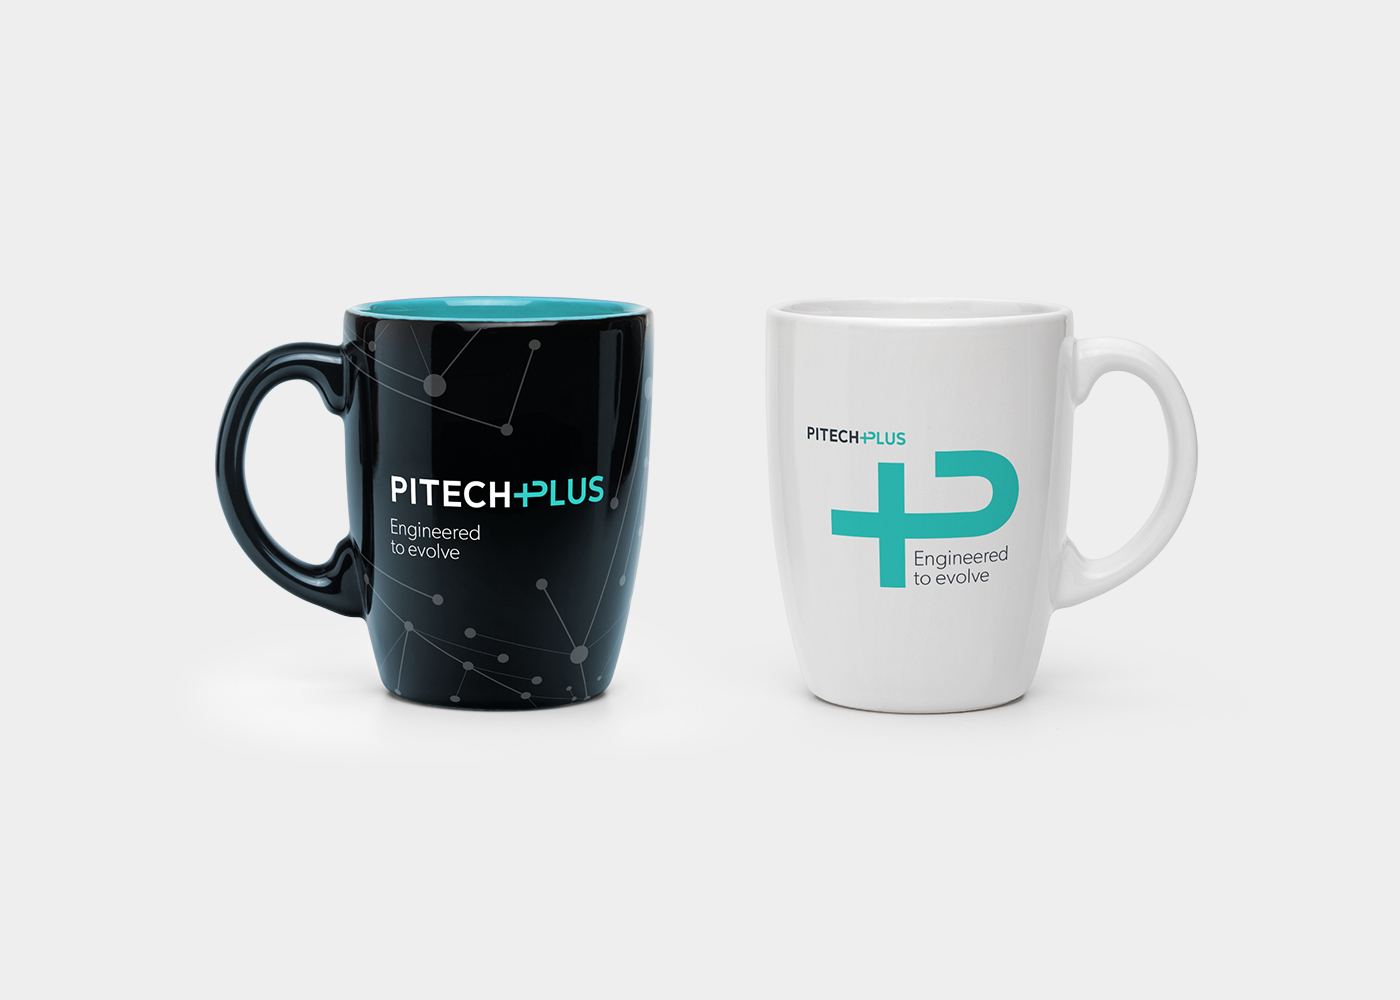 Pitech Plus mugs